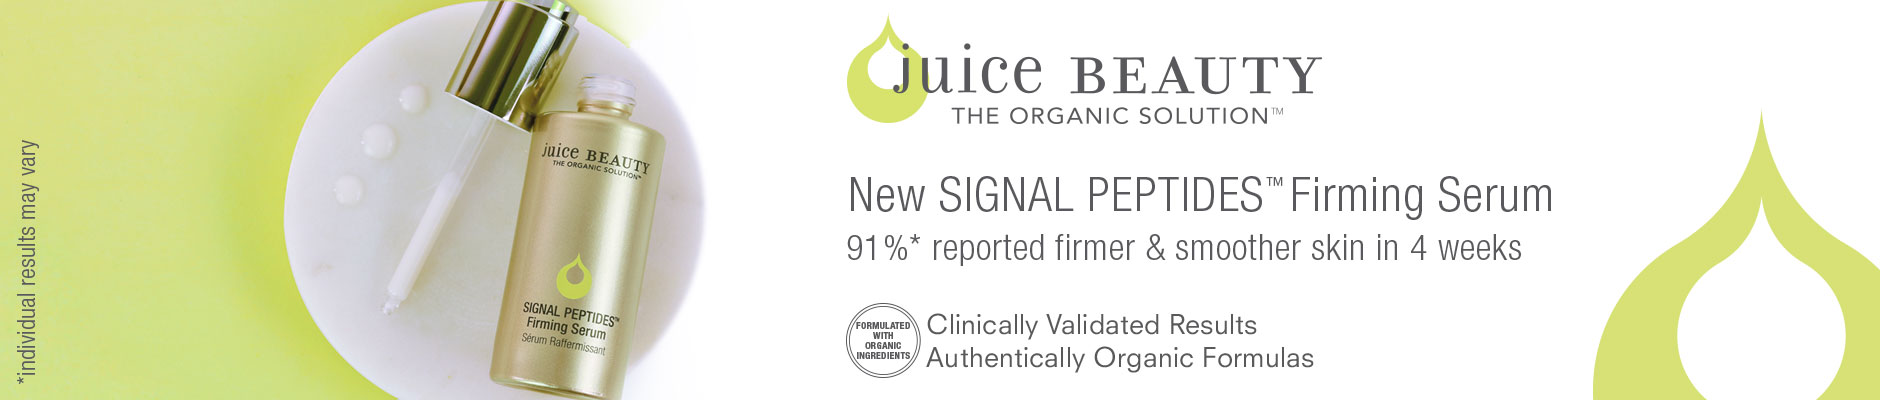 Juice Beauty: The Organic Solution - New Signal Peptides Firming Serum